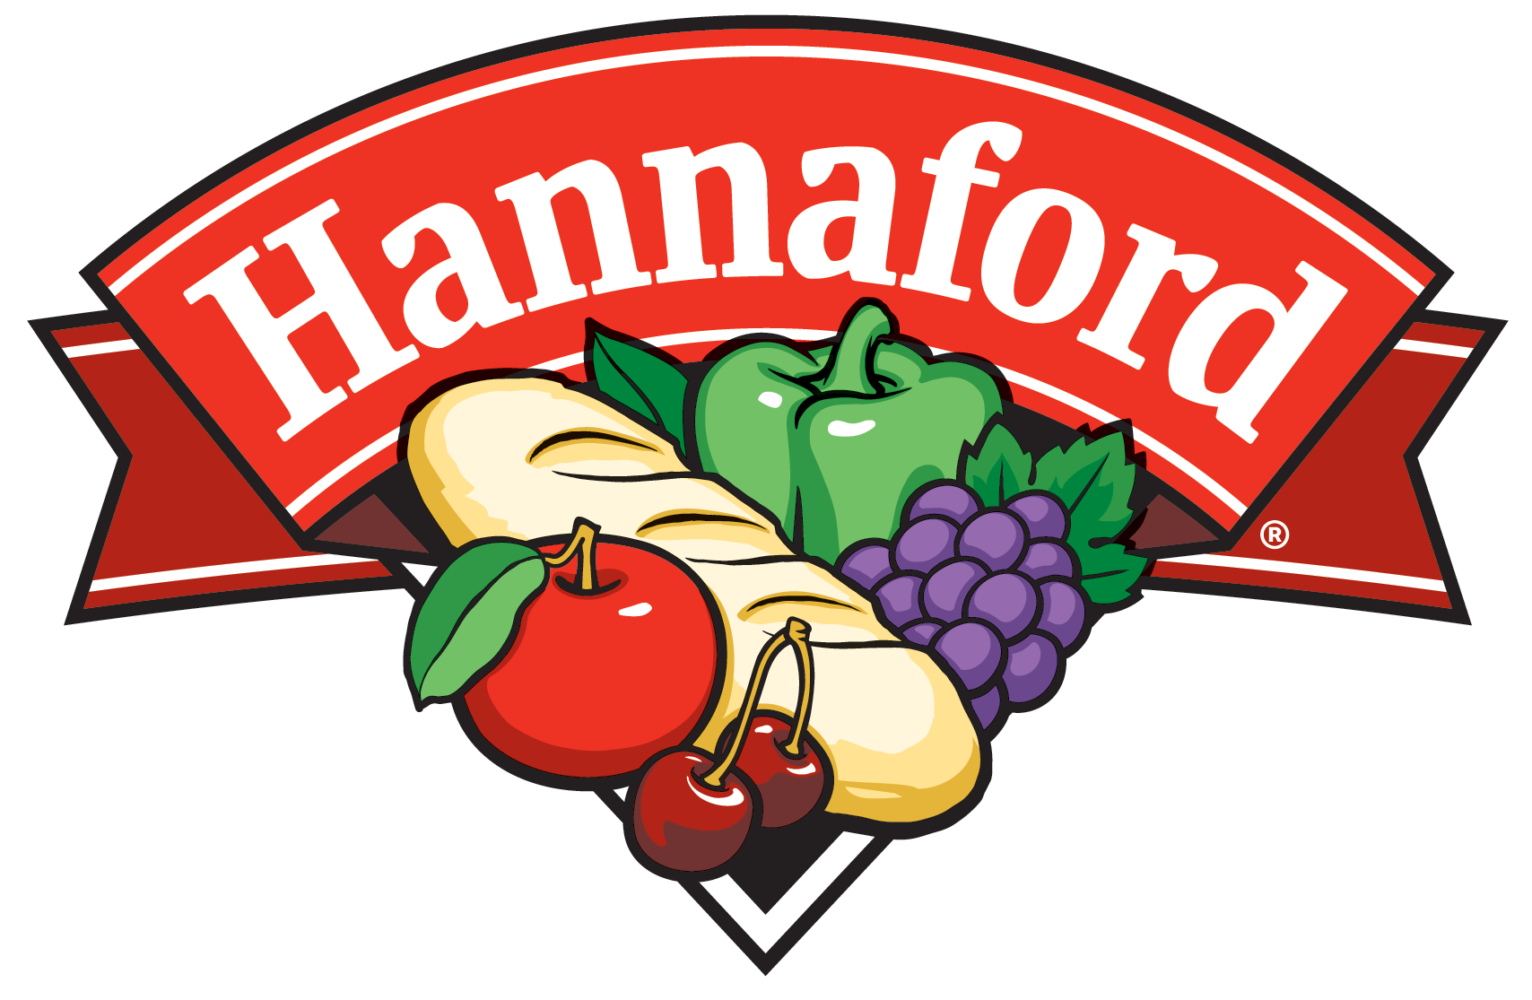 Hannaford scores 100 percent on index of corporate LBGTQ policies - Portland Press Herald